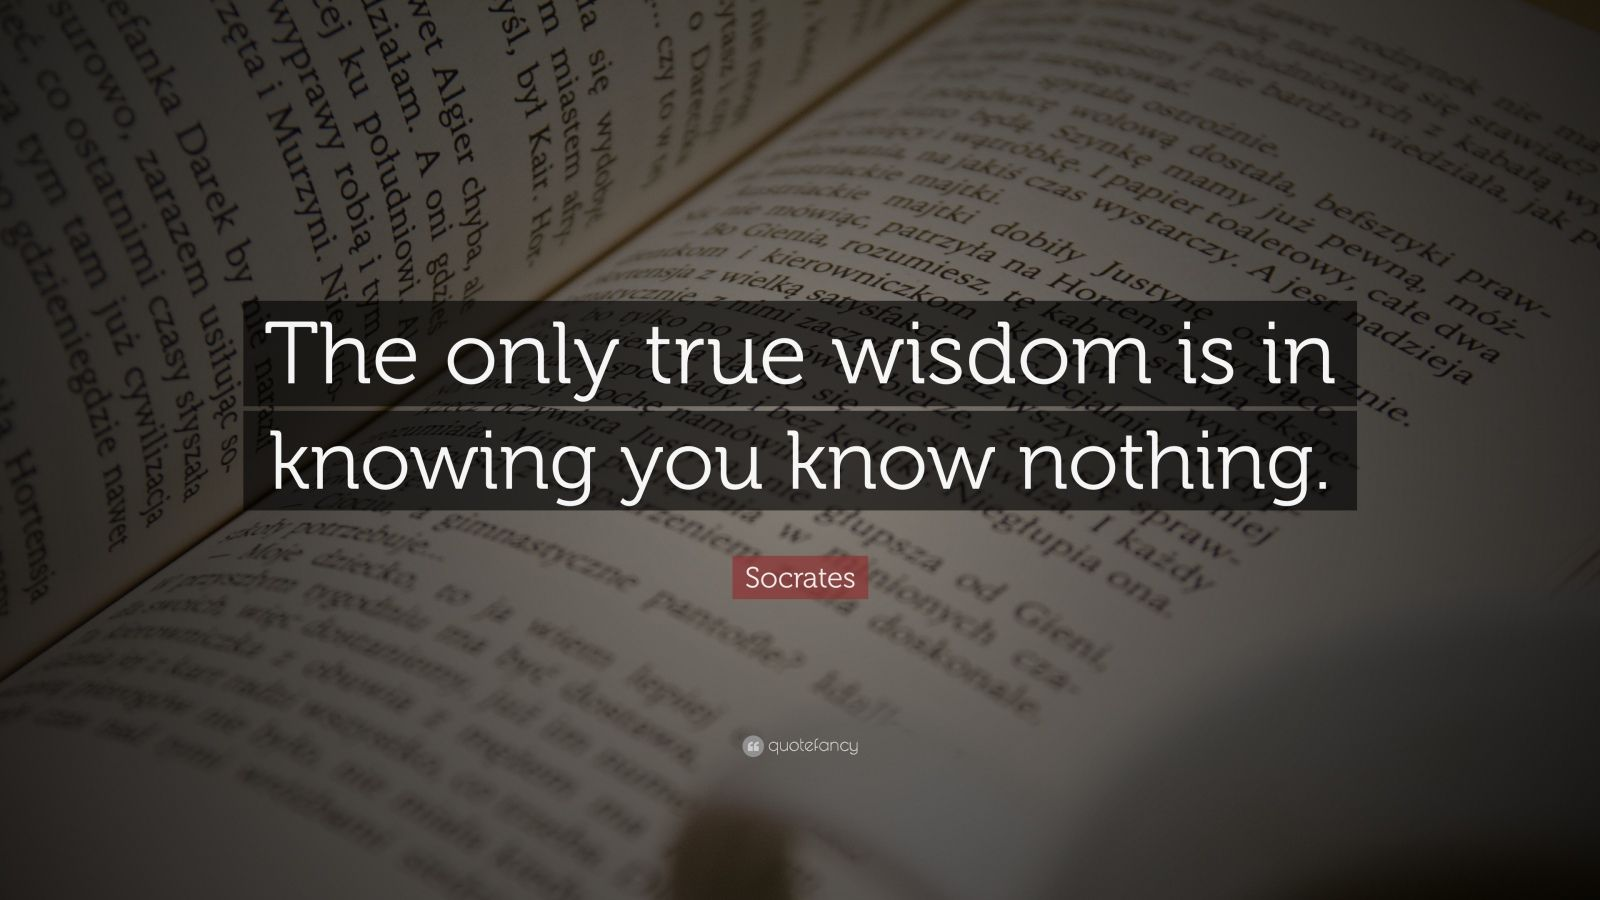 Dalai Lama Quotes Wallpapers Socrates Quote The Only True Wisdom Is In Knowing You